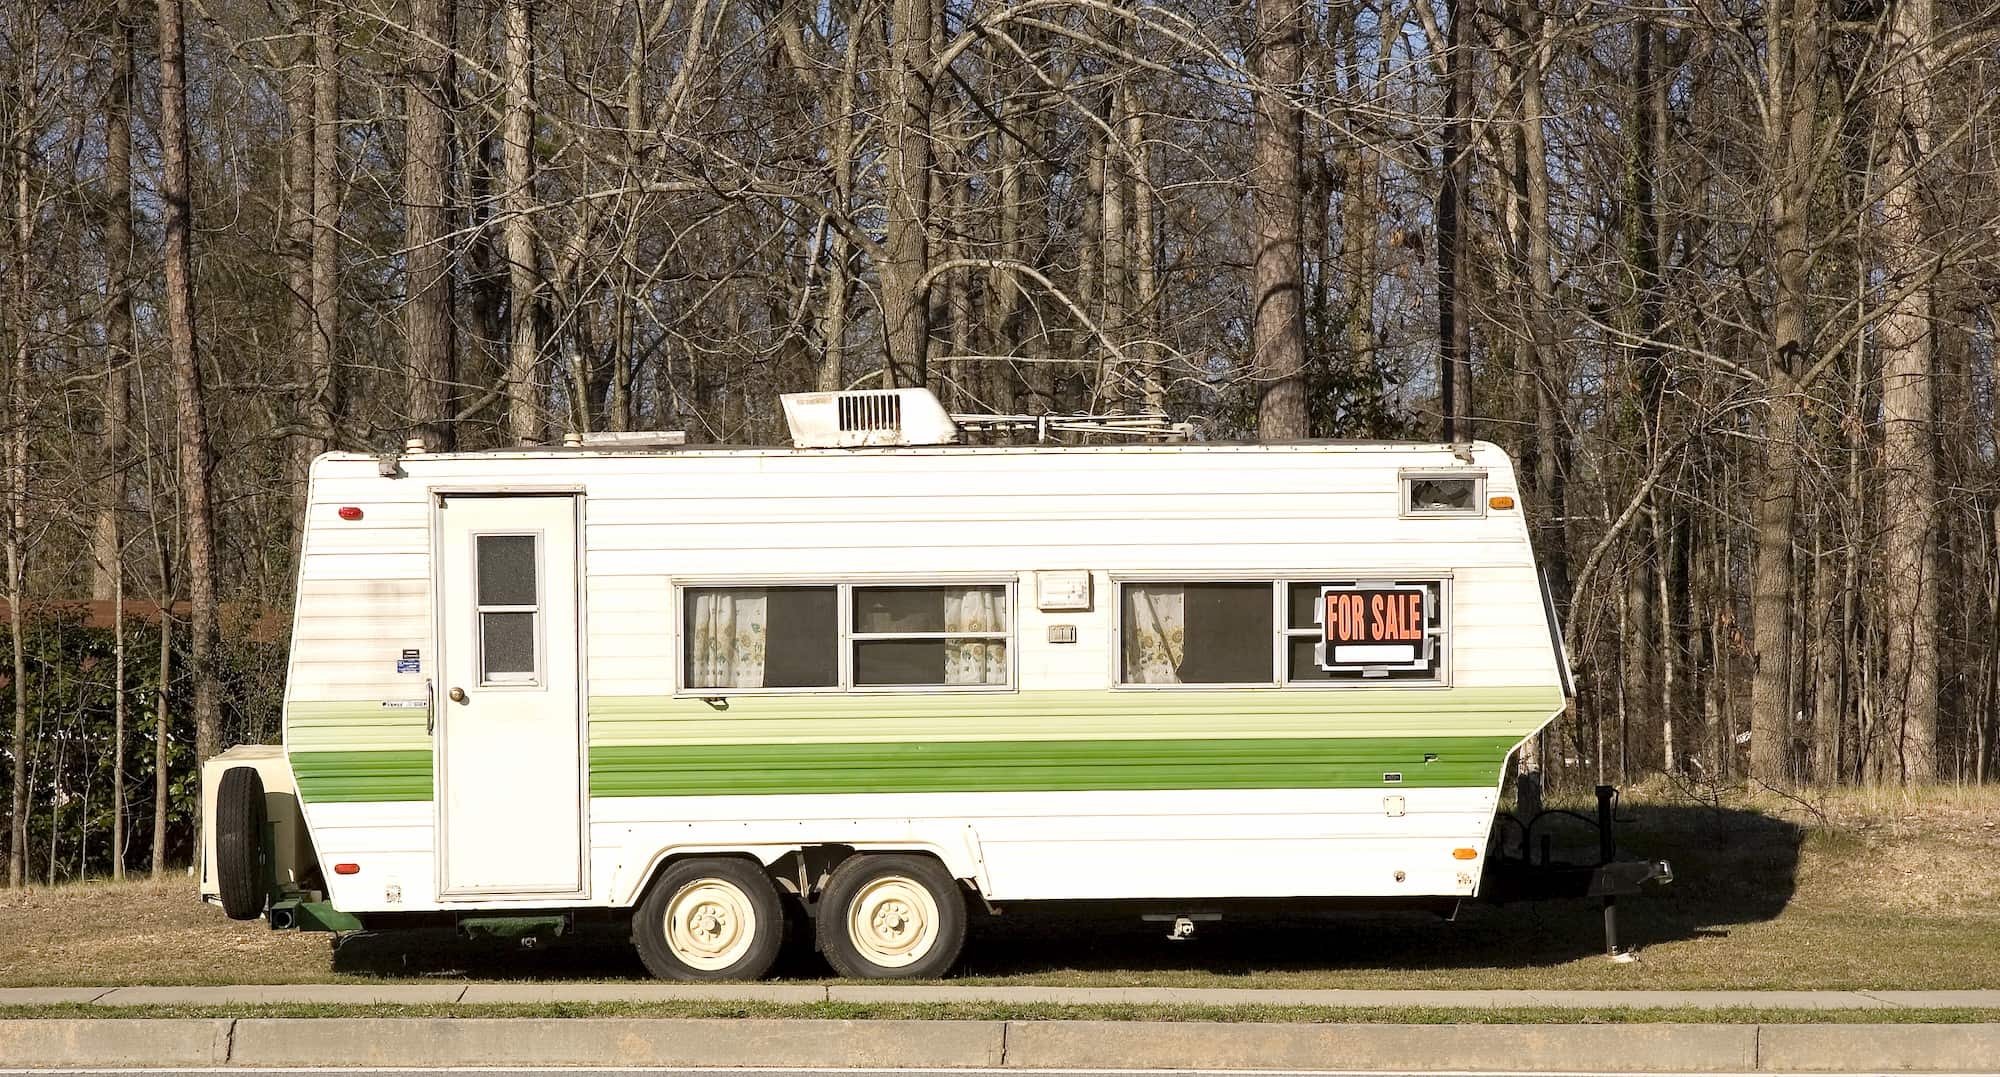 a towable camper trailer on the side of a road with a for sale sign on it